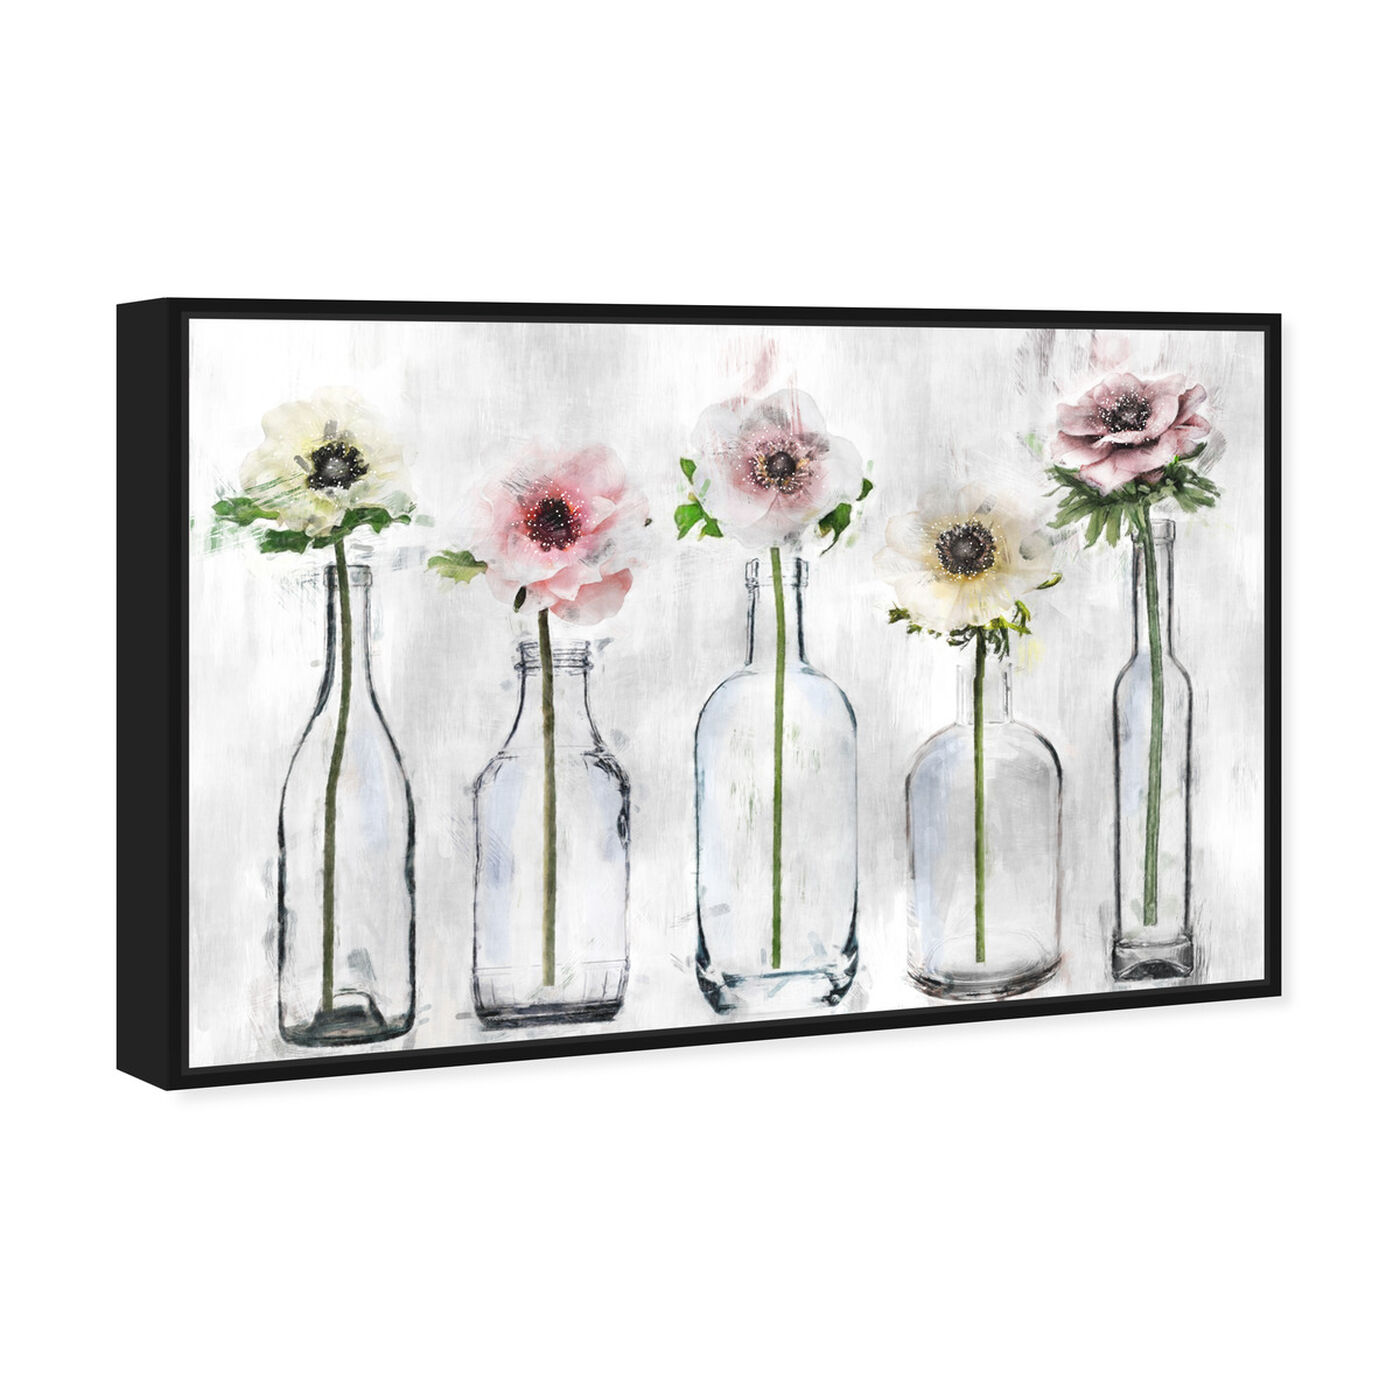 Angled view of Anemone Floral featuring floral and botanical and florals art.